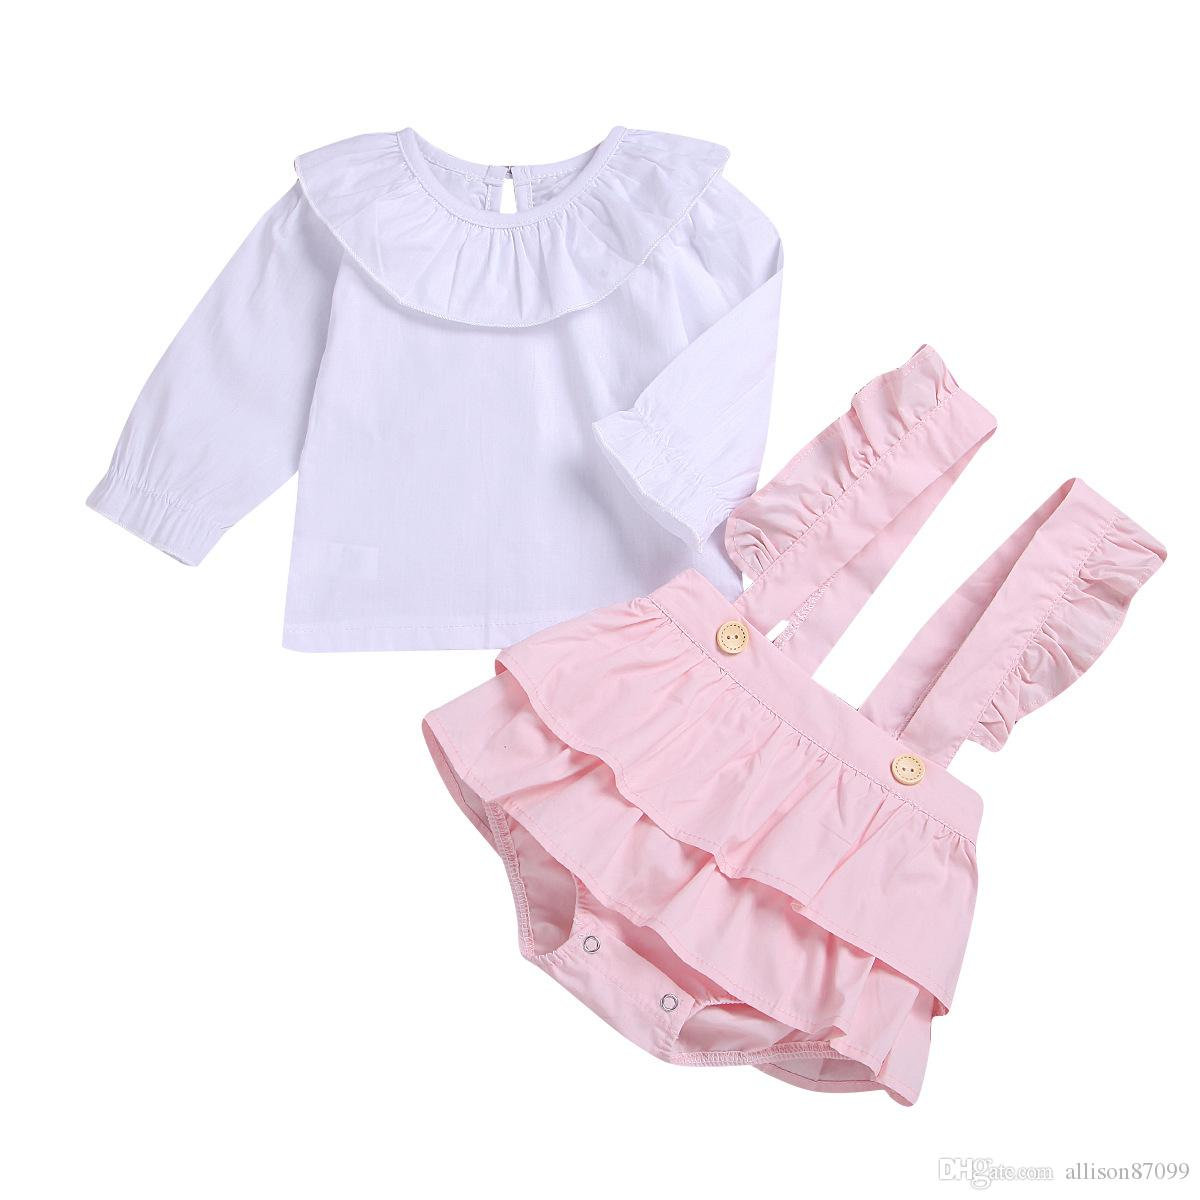 Cute Baby Girl White Cotton Shirt Tops Peter pan collar+Overall Jumpsuit 2pcs set Stars Pink Yellow Hotsale 2019